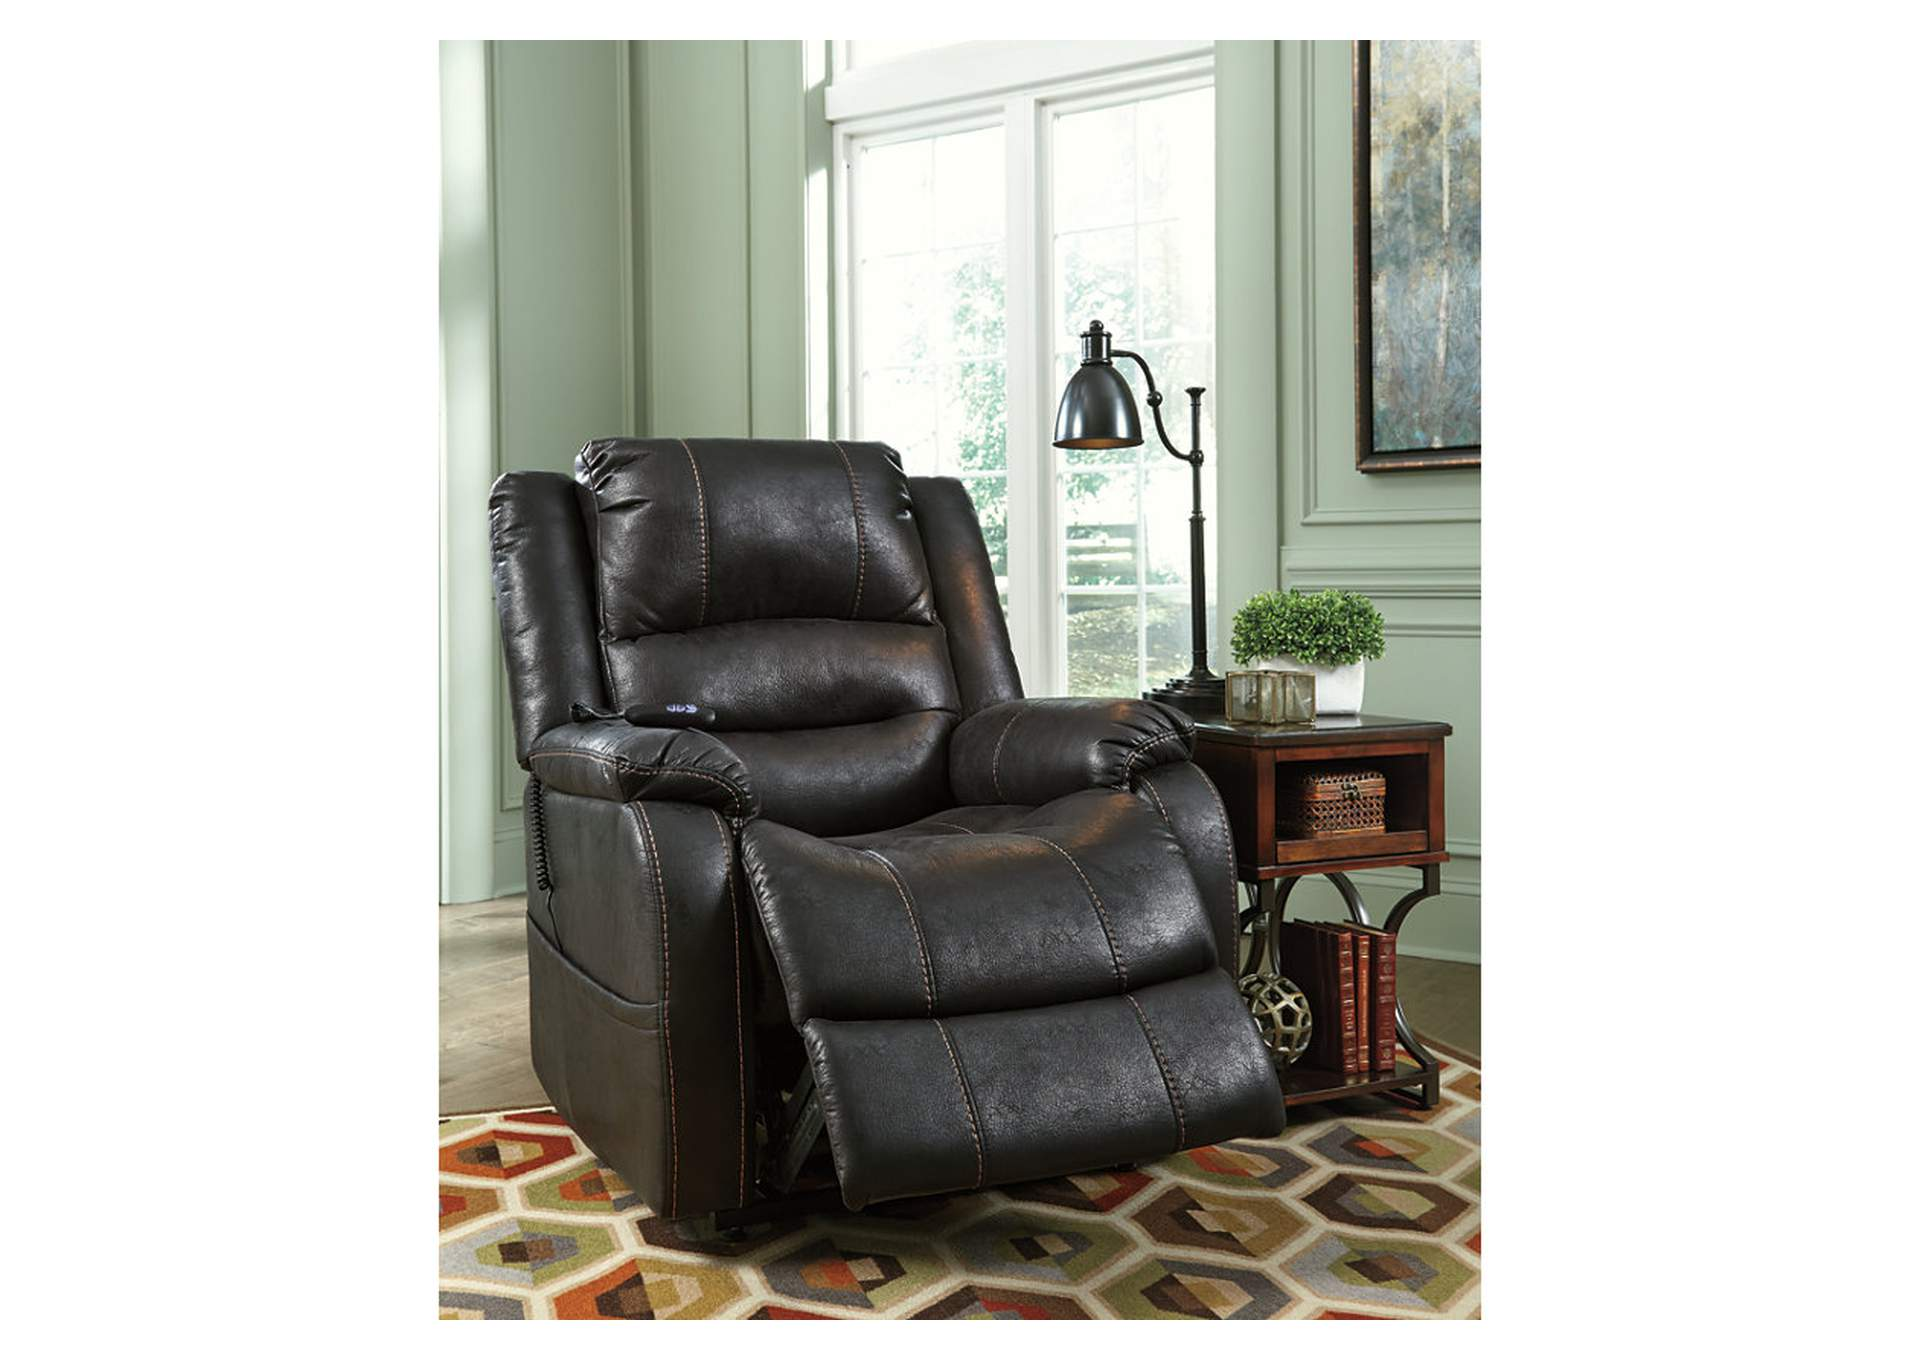 Davis home furniture asheville nc yandel black power lift recliner Davis home furniture asheville hours